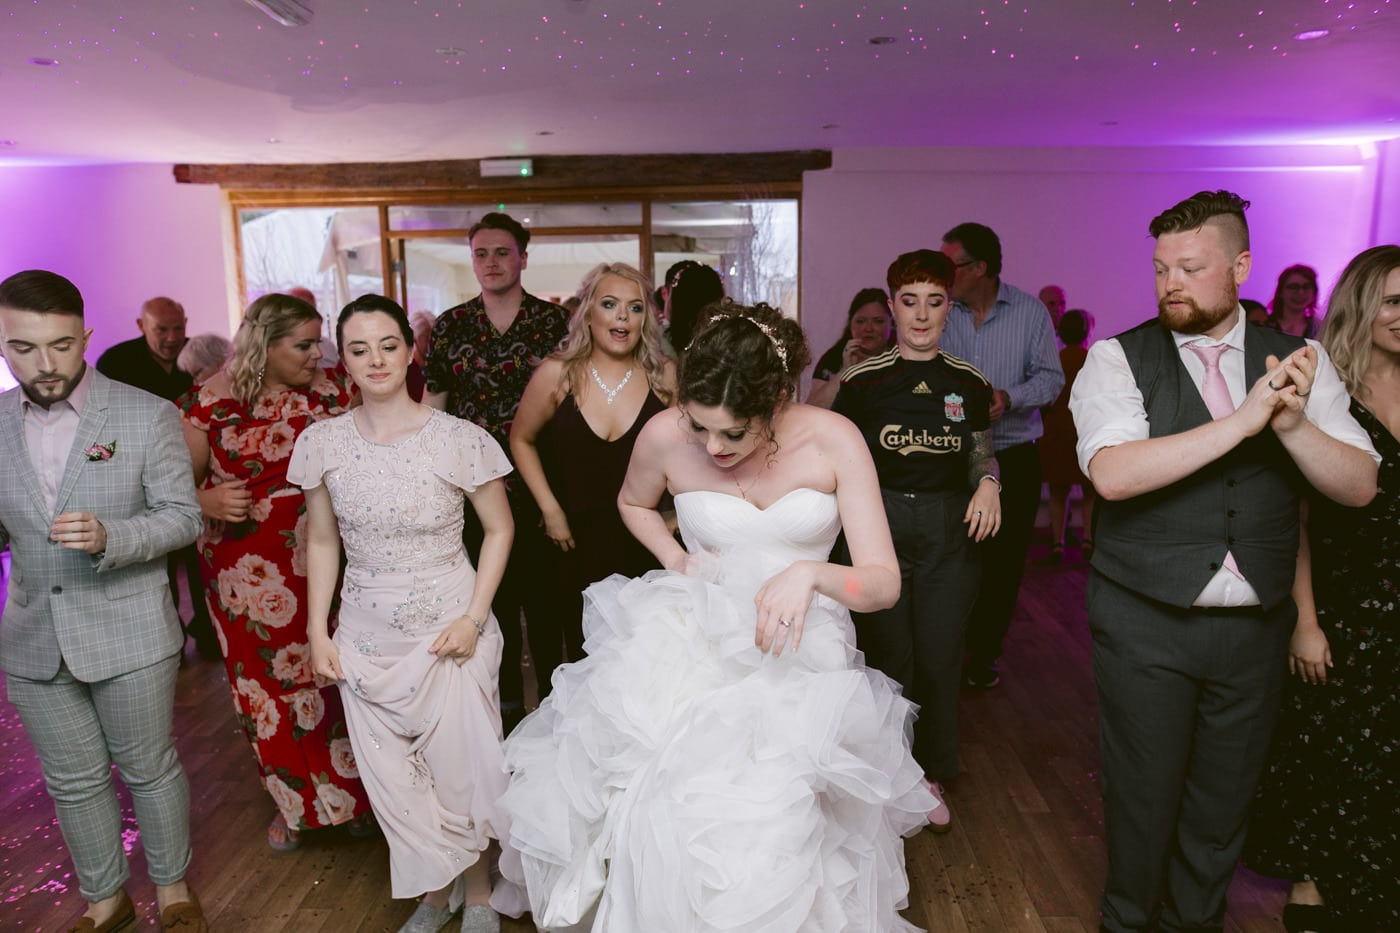 Bride Leading The Dance on The Main Floor Portrait with Guests